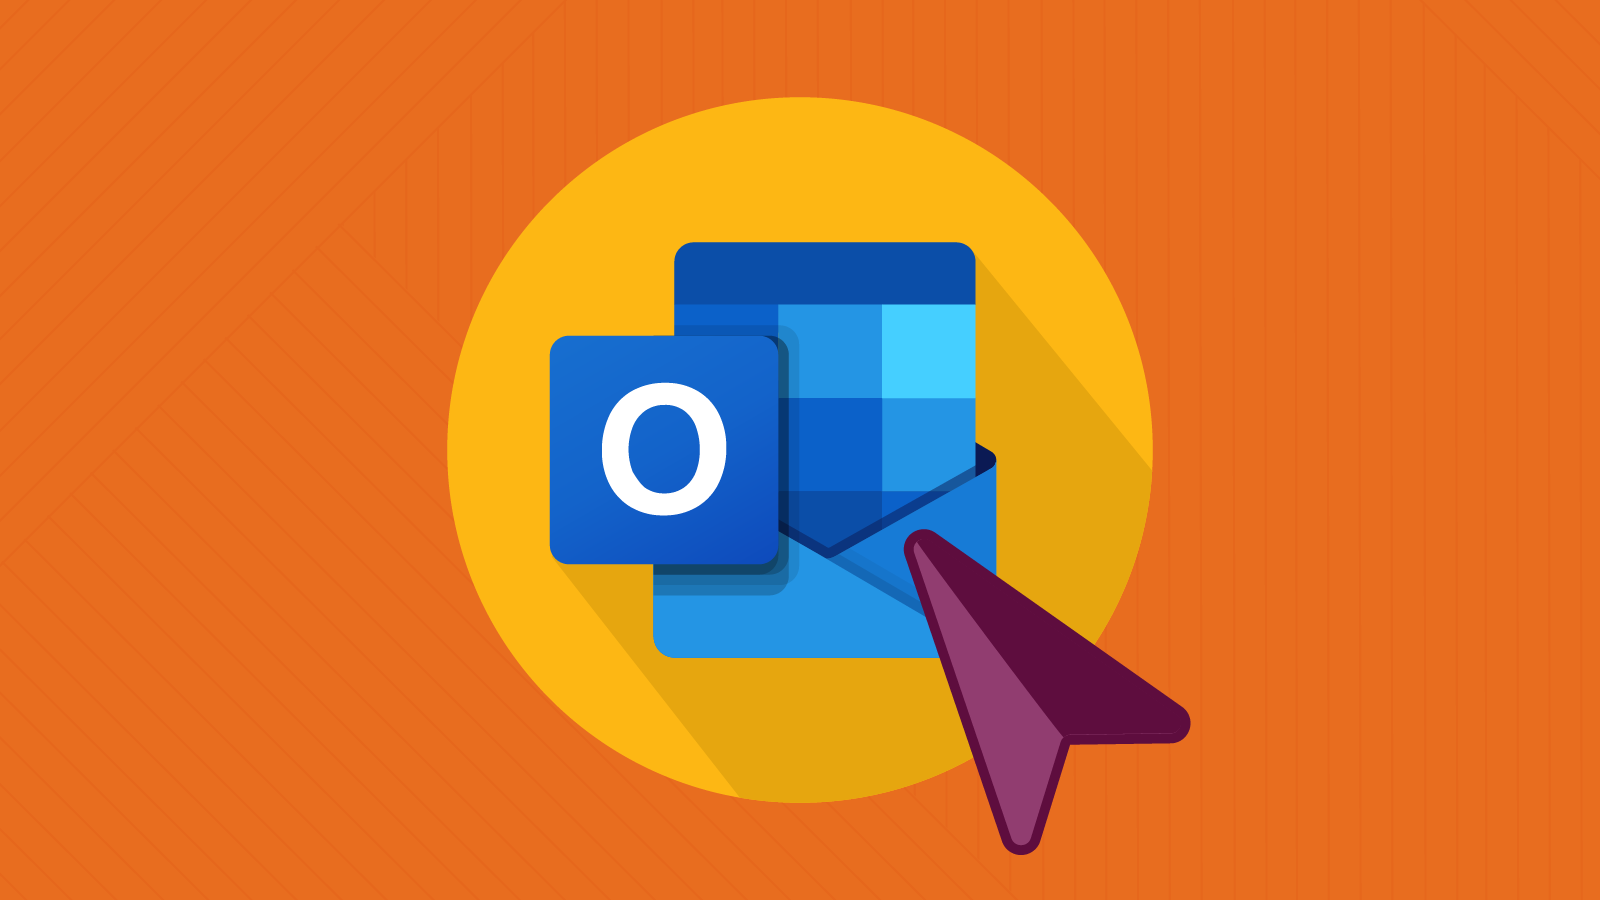 outlook logo with mouse cursor